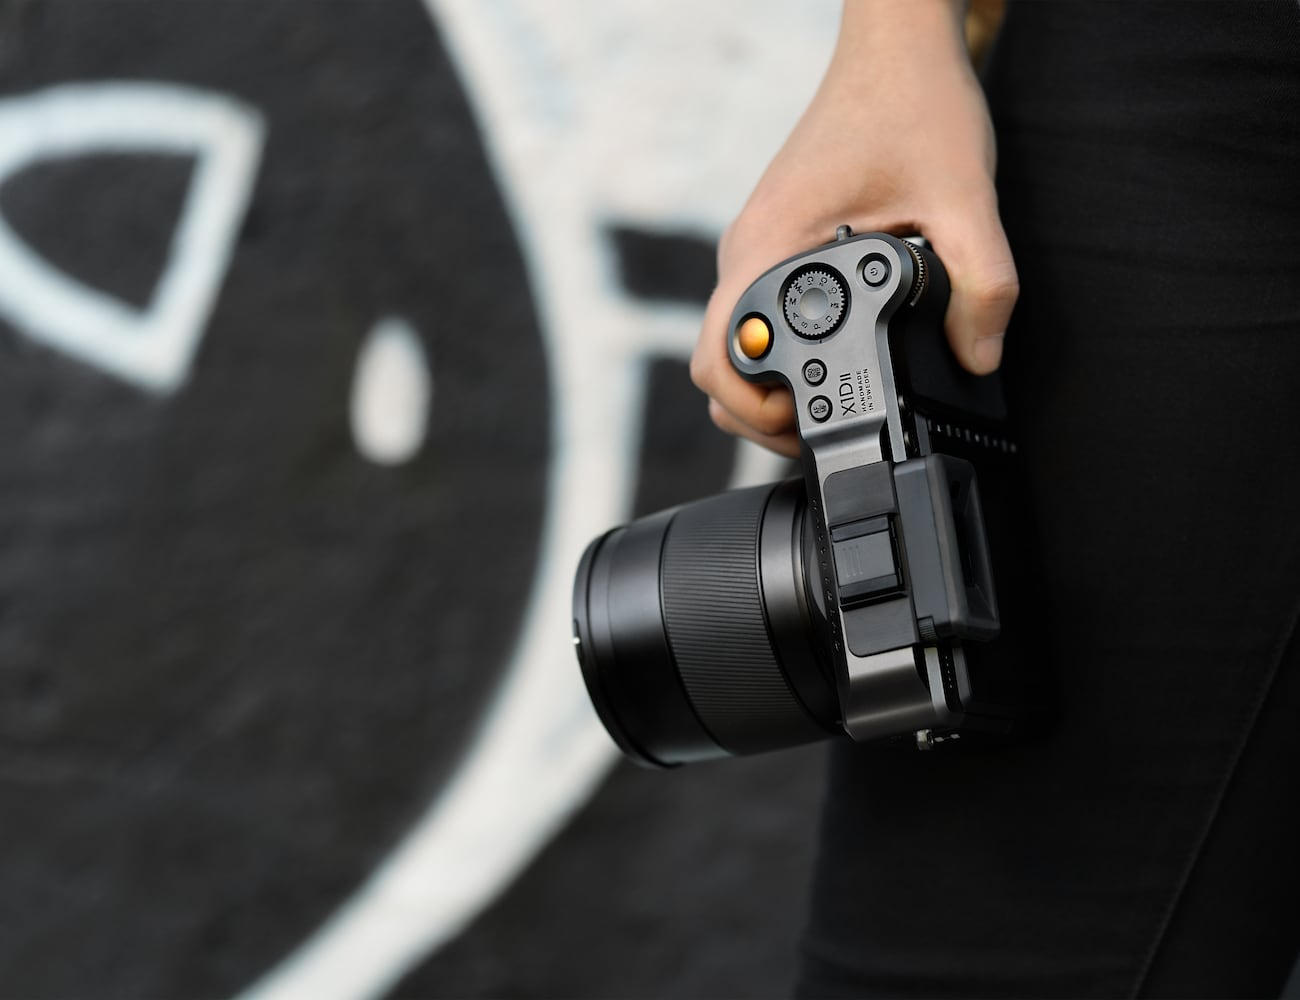 Hasselblad X1D II 50C Medium Format Camera is both powerful and portable